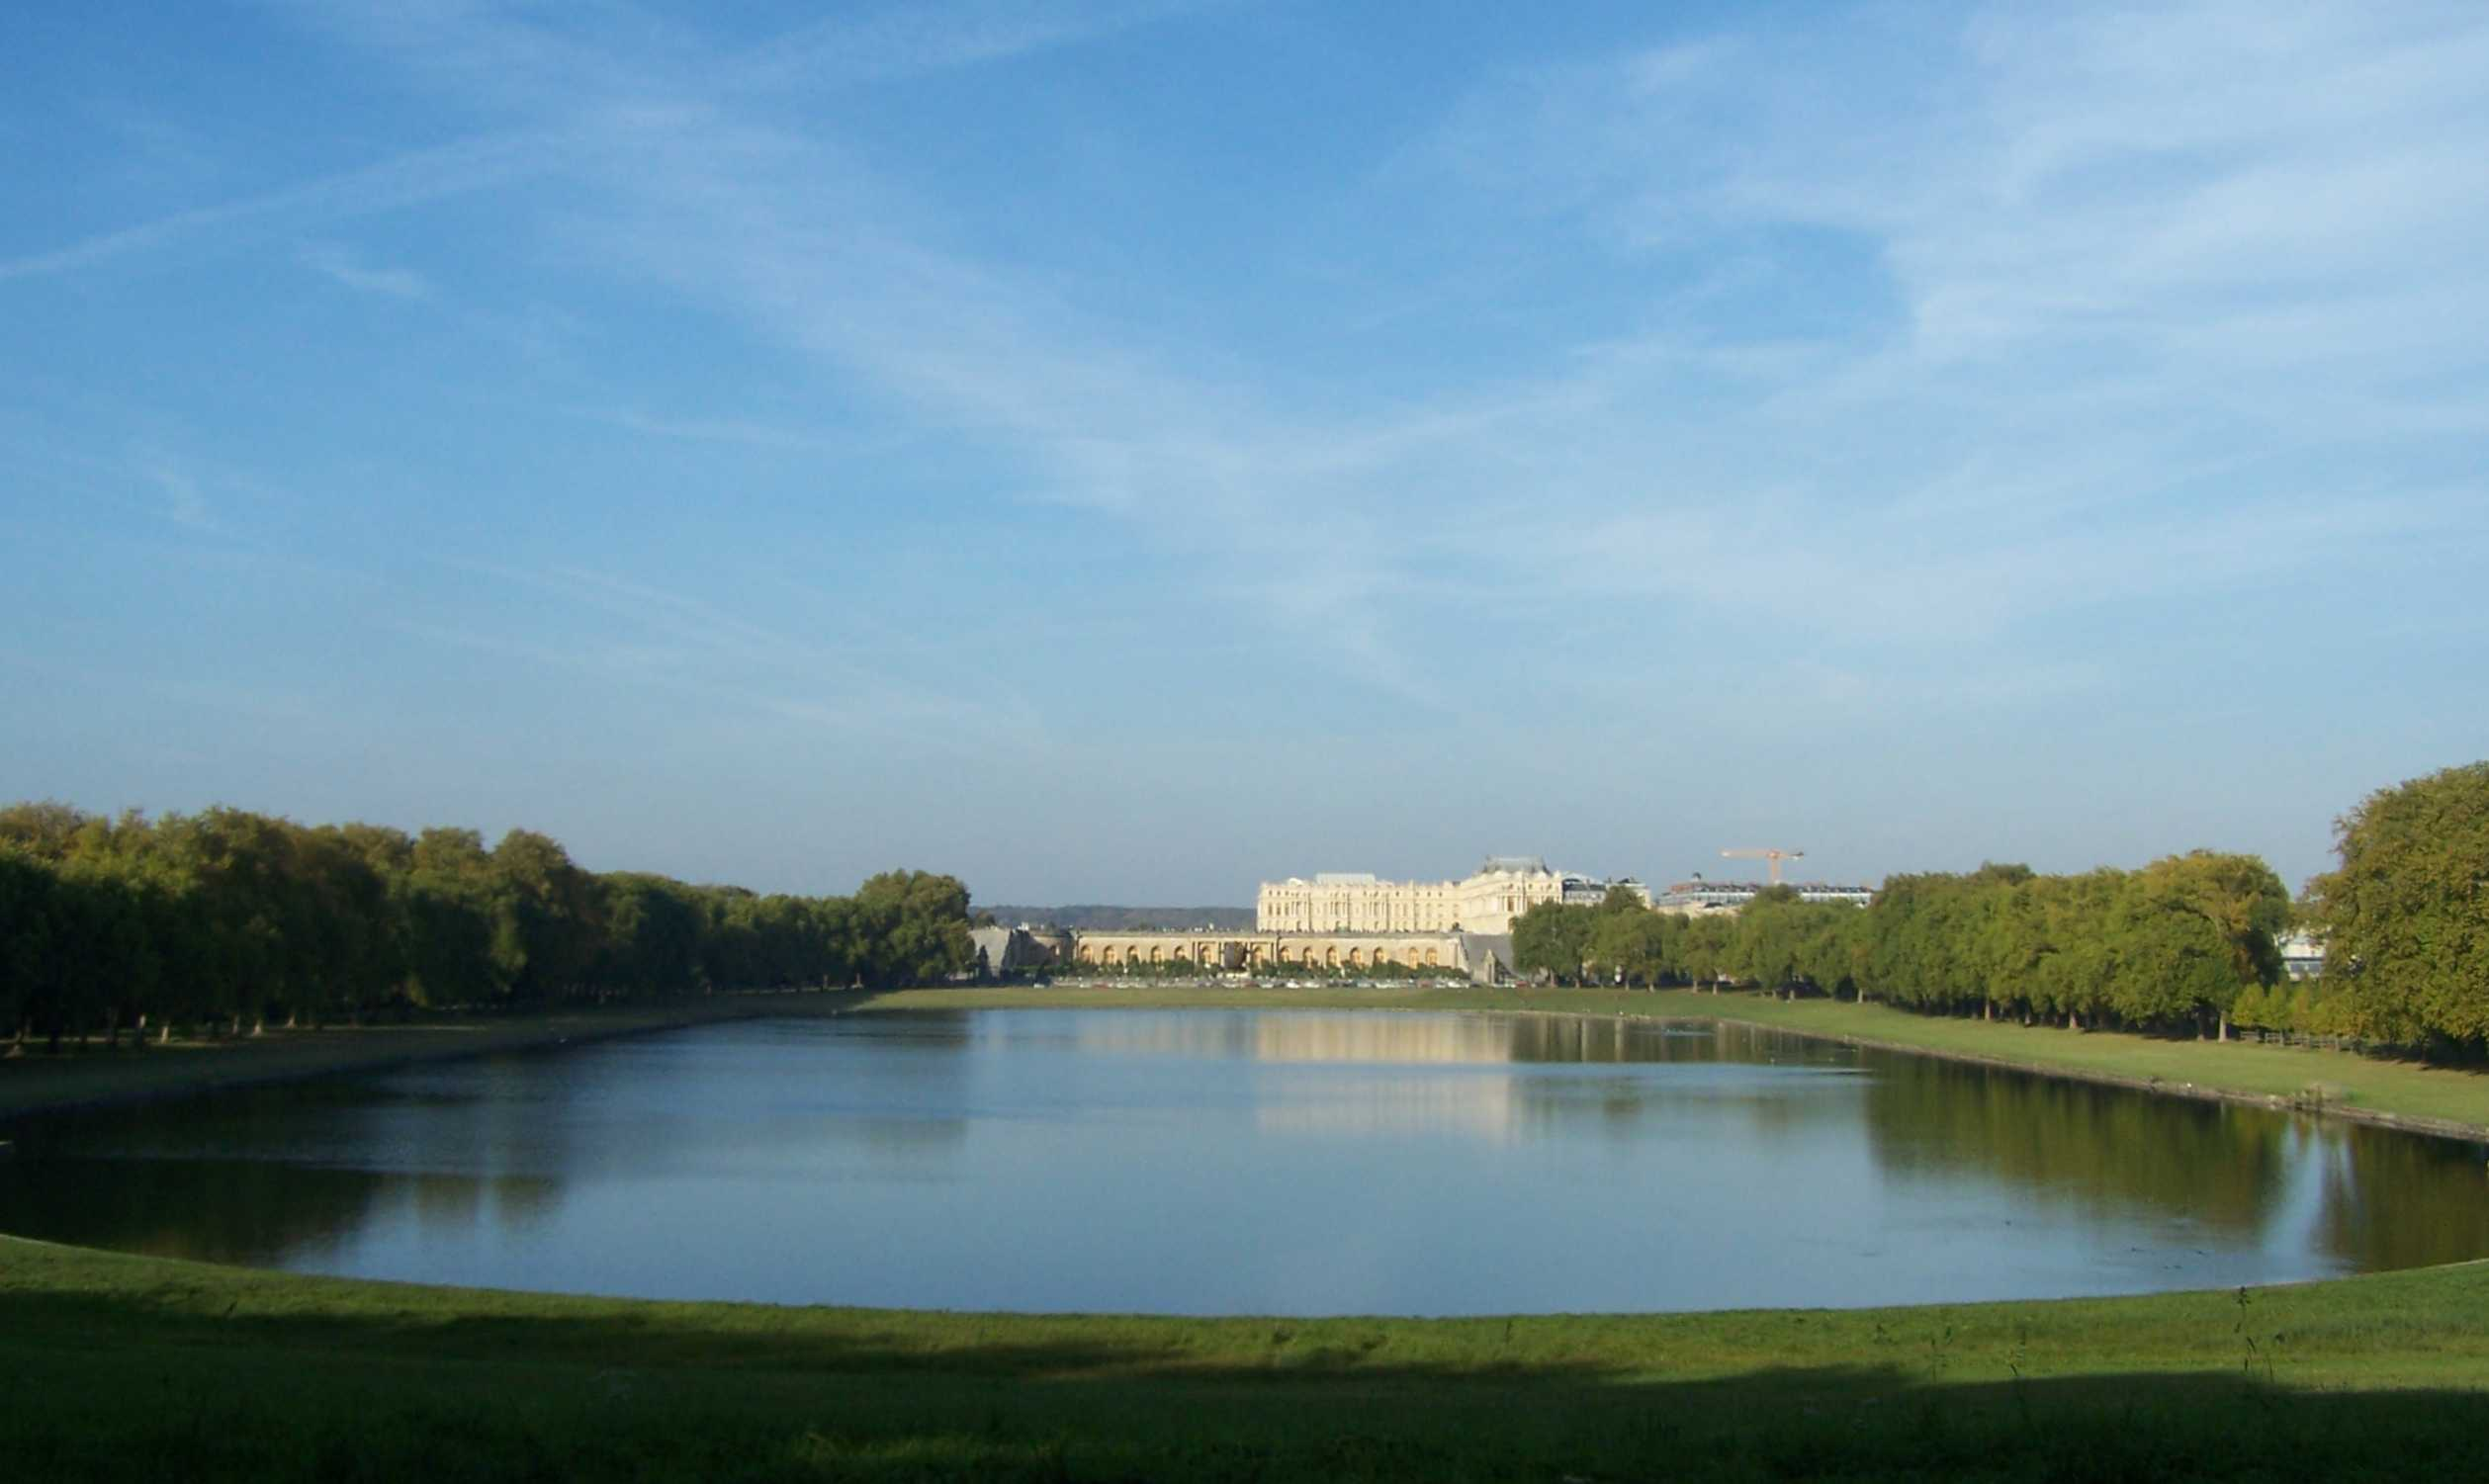 https://upload.wikimedia.org/wikipedia/commons/d/db/Versailles_Pi%C3%A8ce_d%27eau_Suisses05.jpg